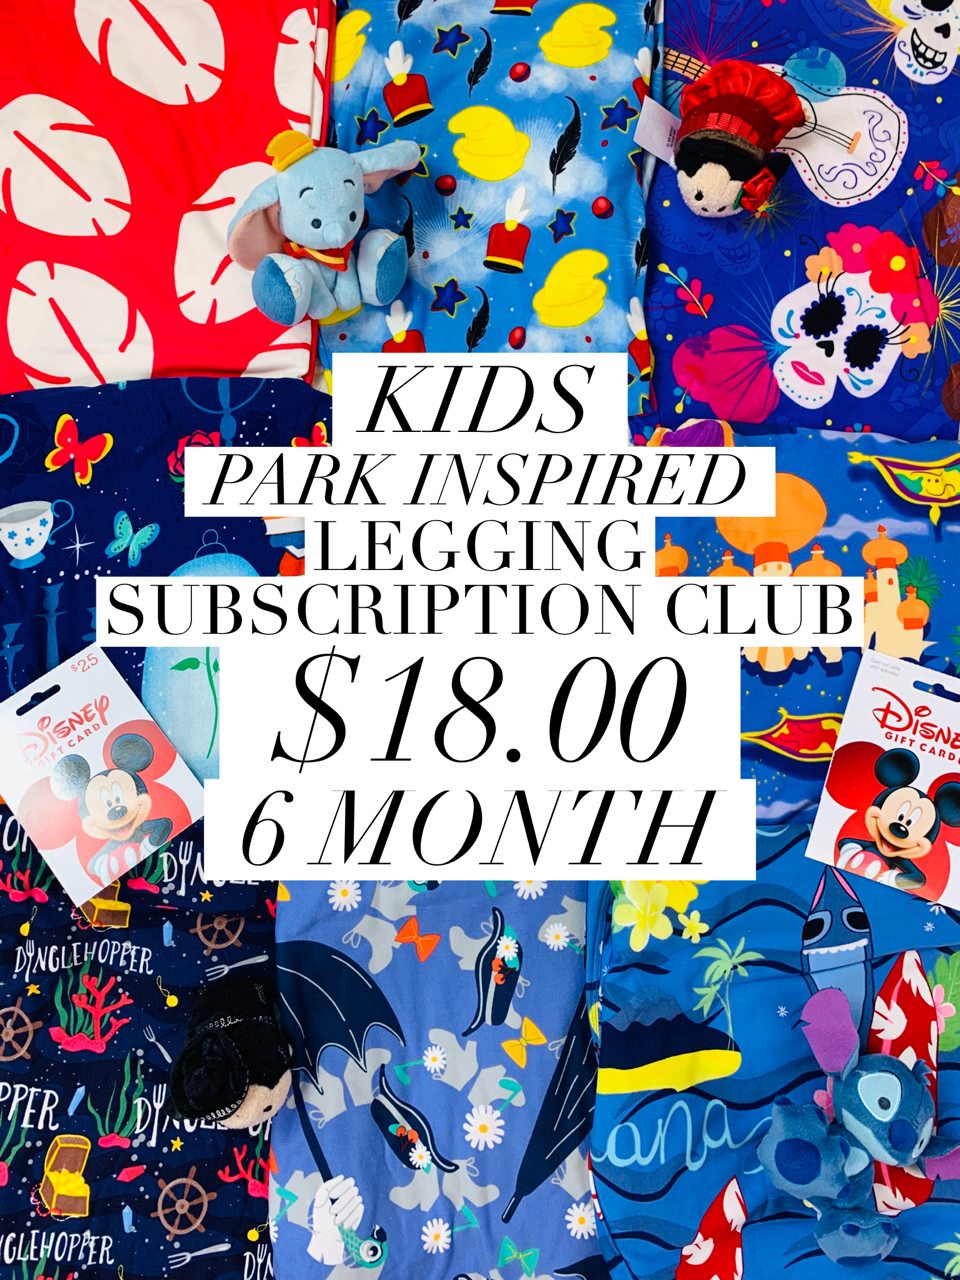 Kids Park Inspired Leggings Subscription Club - 6 Month Subscription - Ambrie